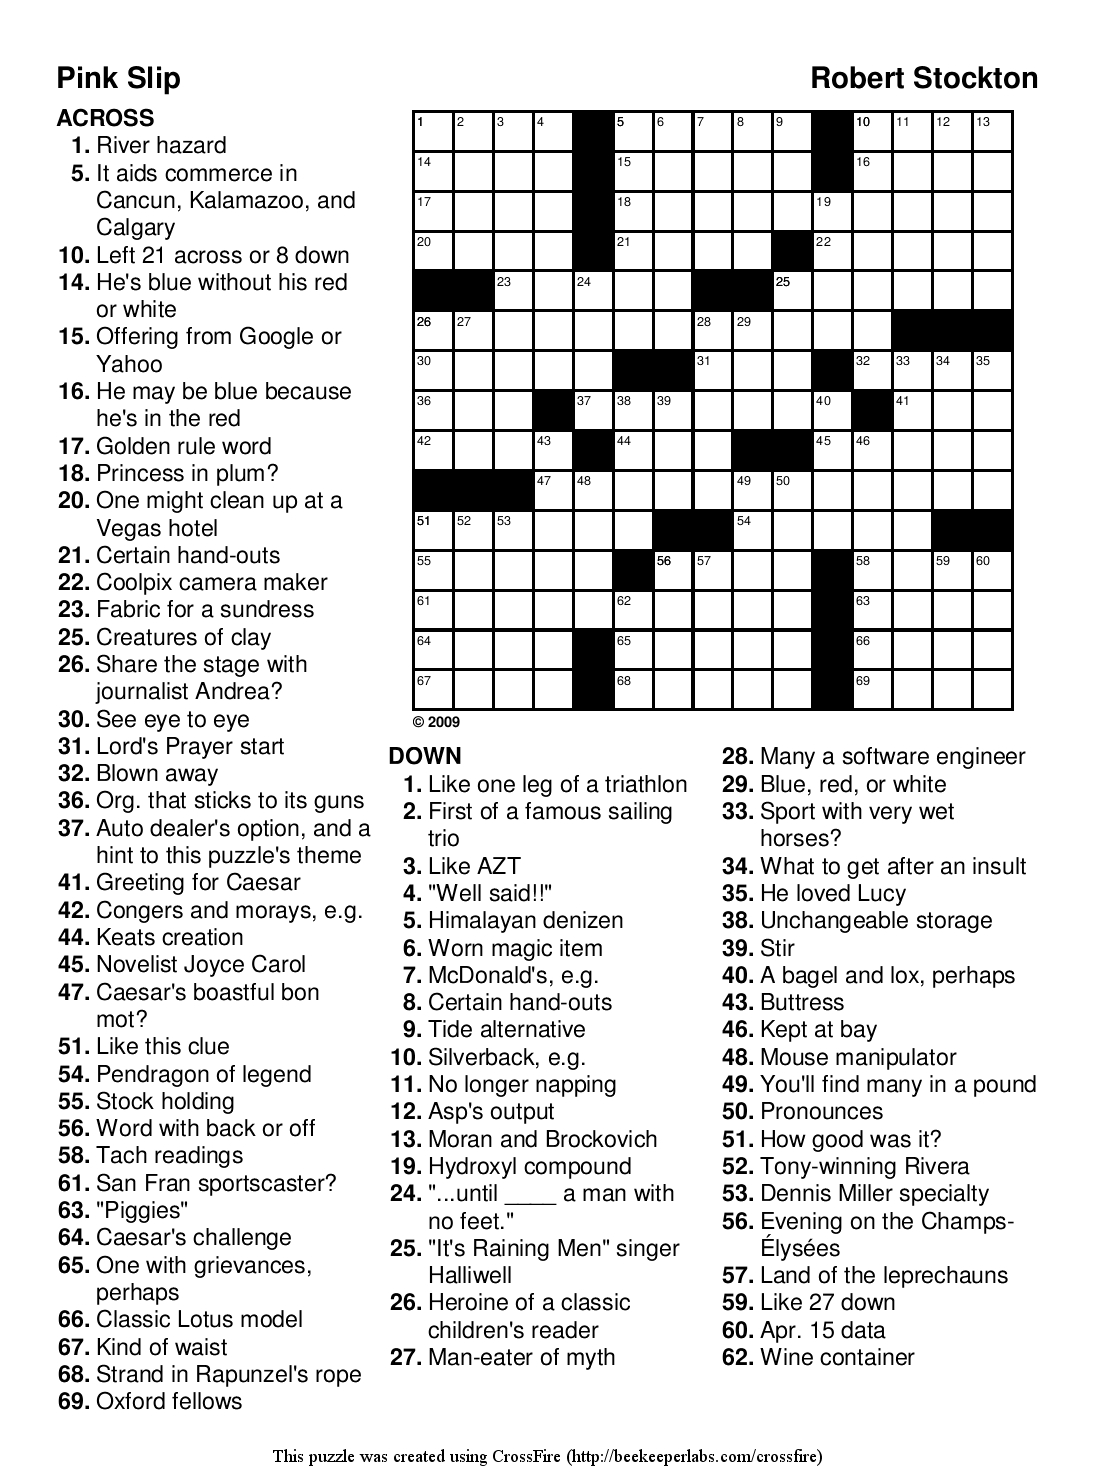 Printable Puzzles For Adults | Easy Word Puzzles Printable Festivals - Printable Crossword Puzzles About Books